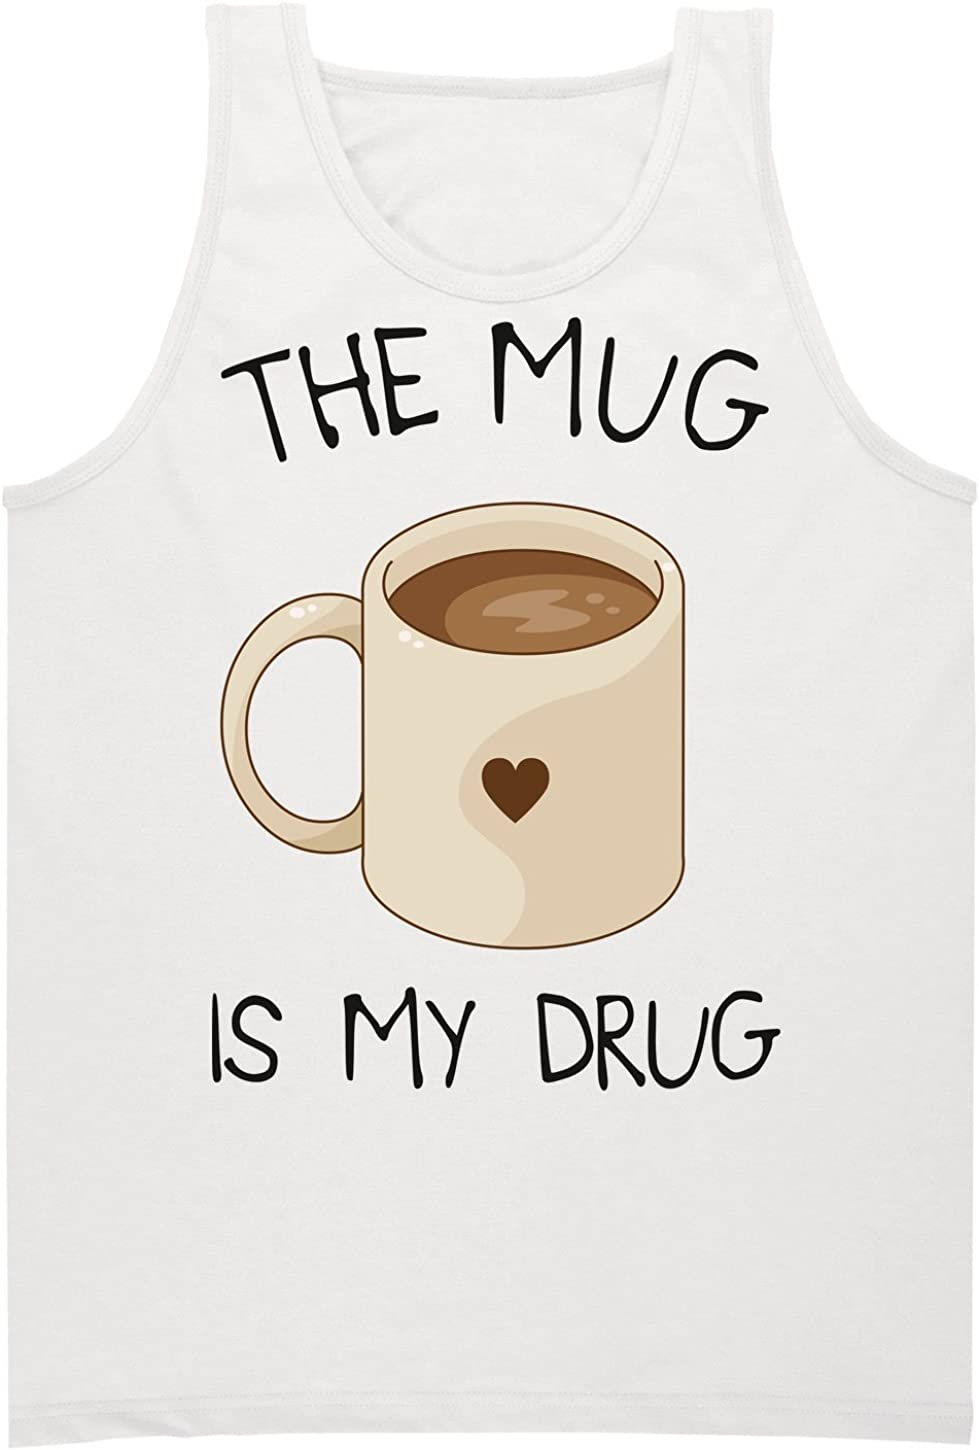 Finest Prints The Mug Is My Drug A Cup Of Coffee Mens Tank Top Shirt